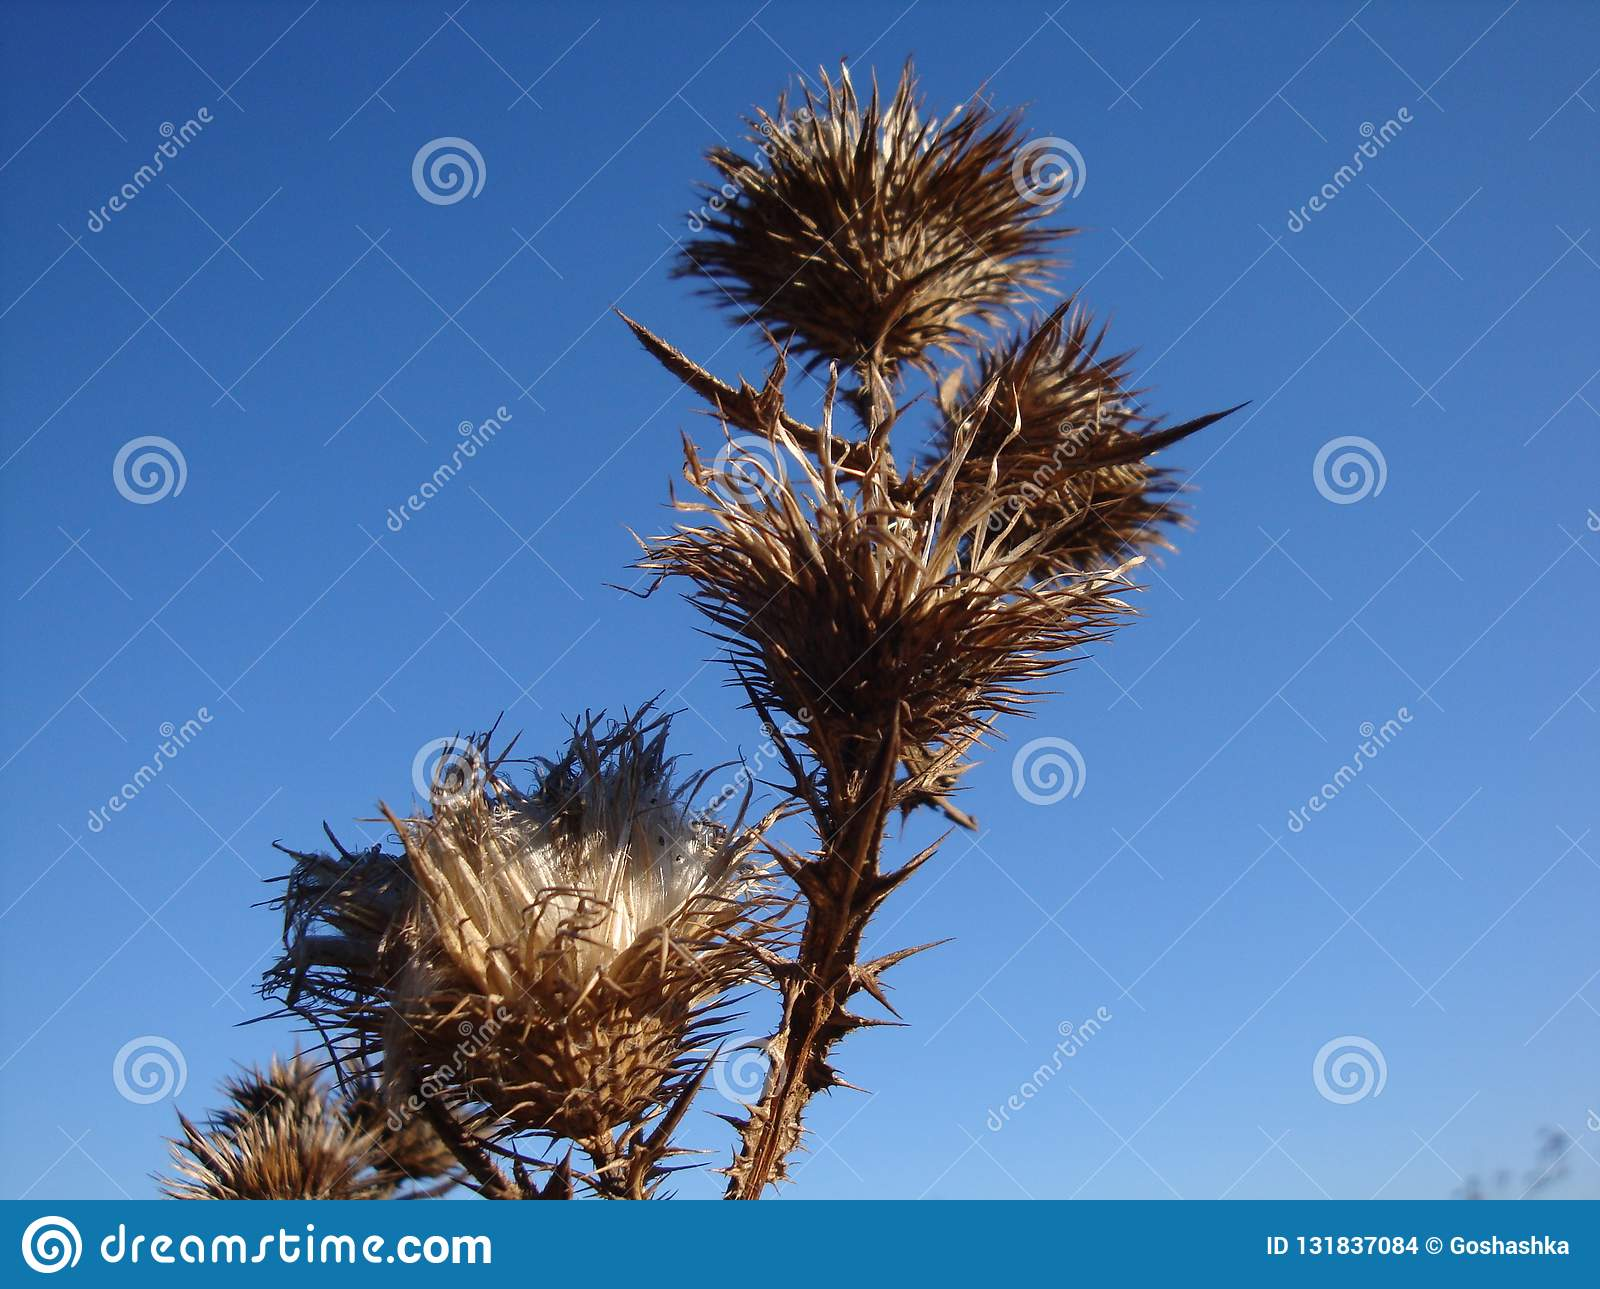 A dry and prickly thorn bush on a dry field